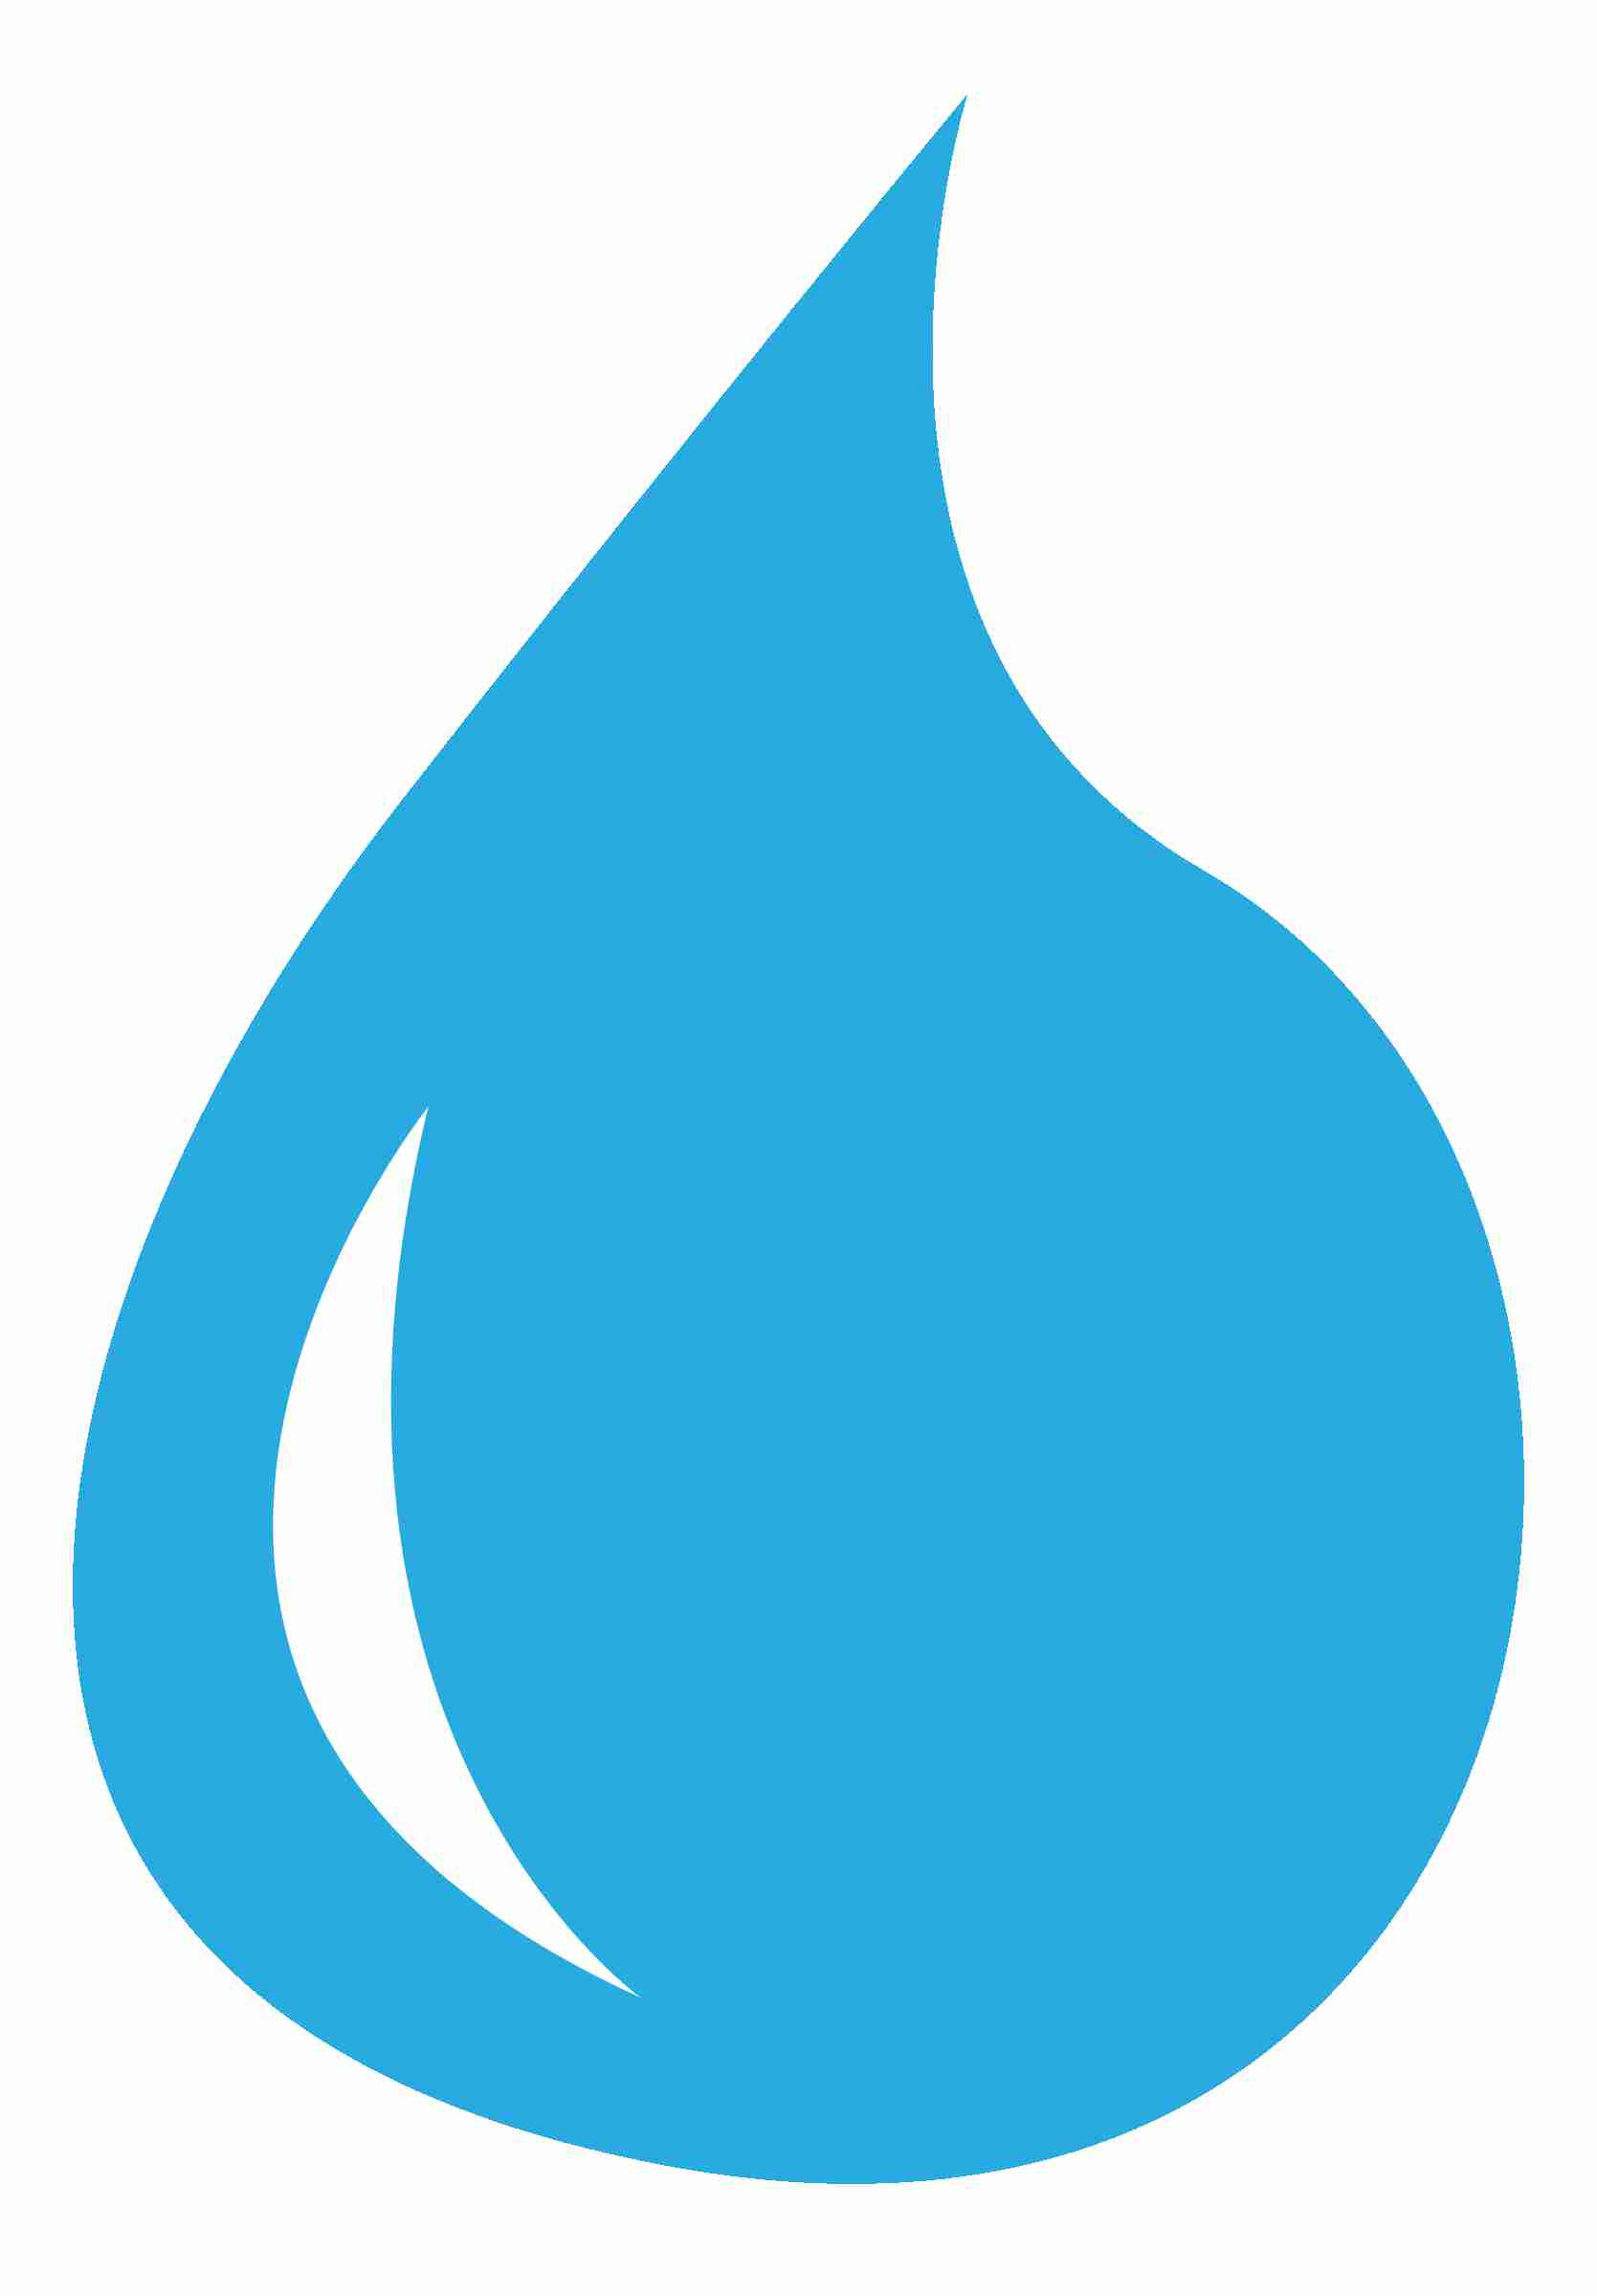 Raindrop clipart water drop.  and spill icon